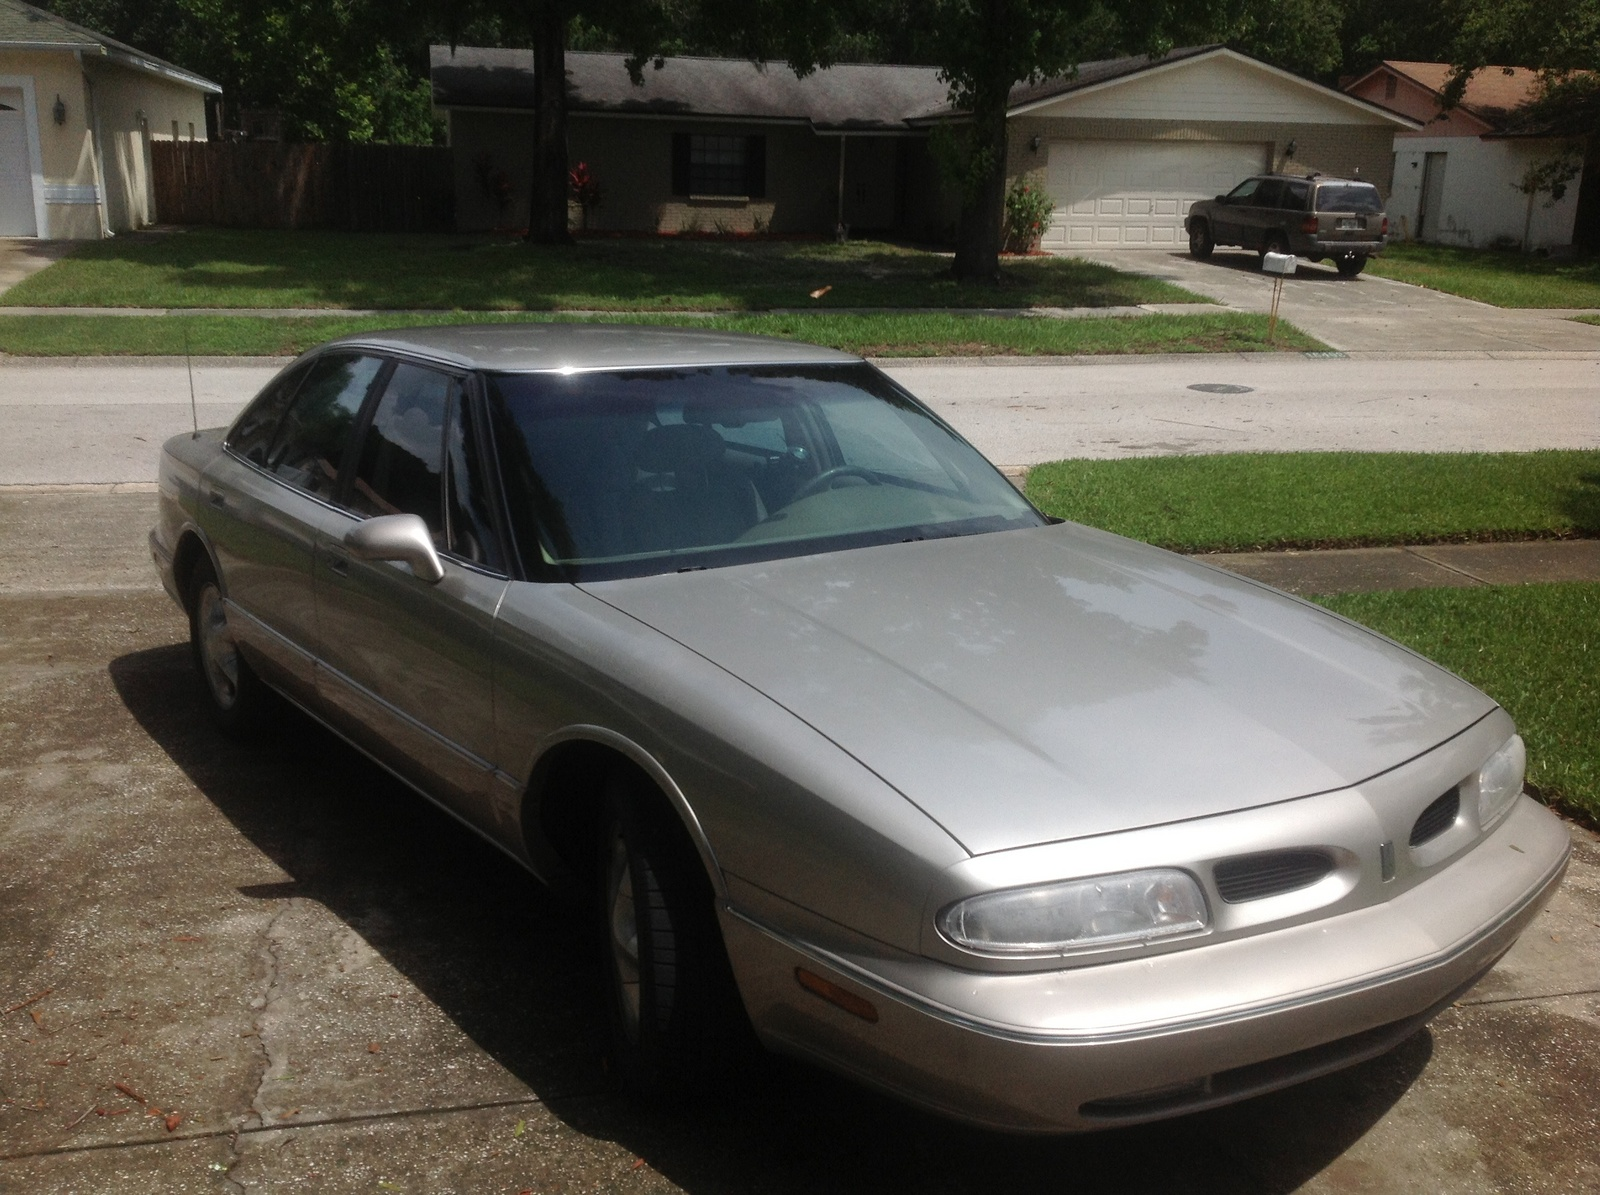 1996 Oldsmobile Eighty-Eight 4 Dr LSS Supercharged Sedan picture